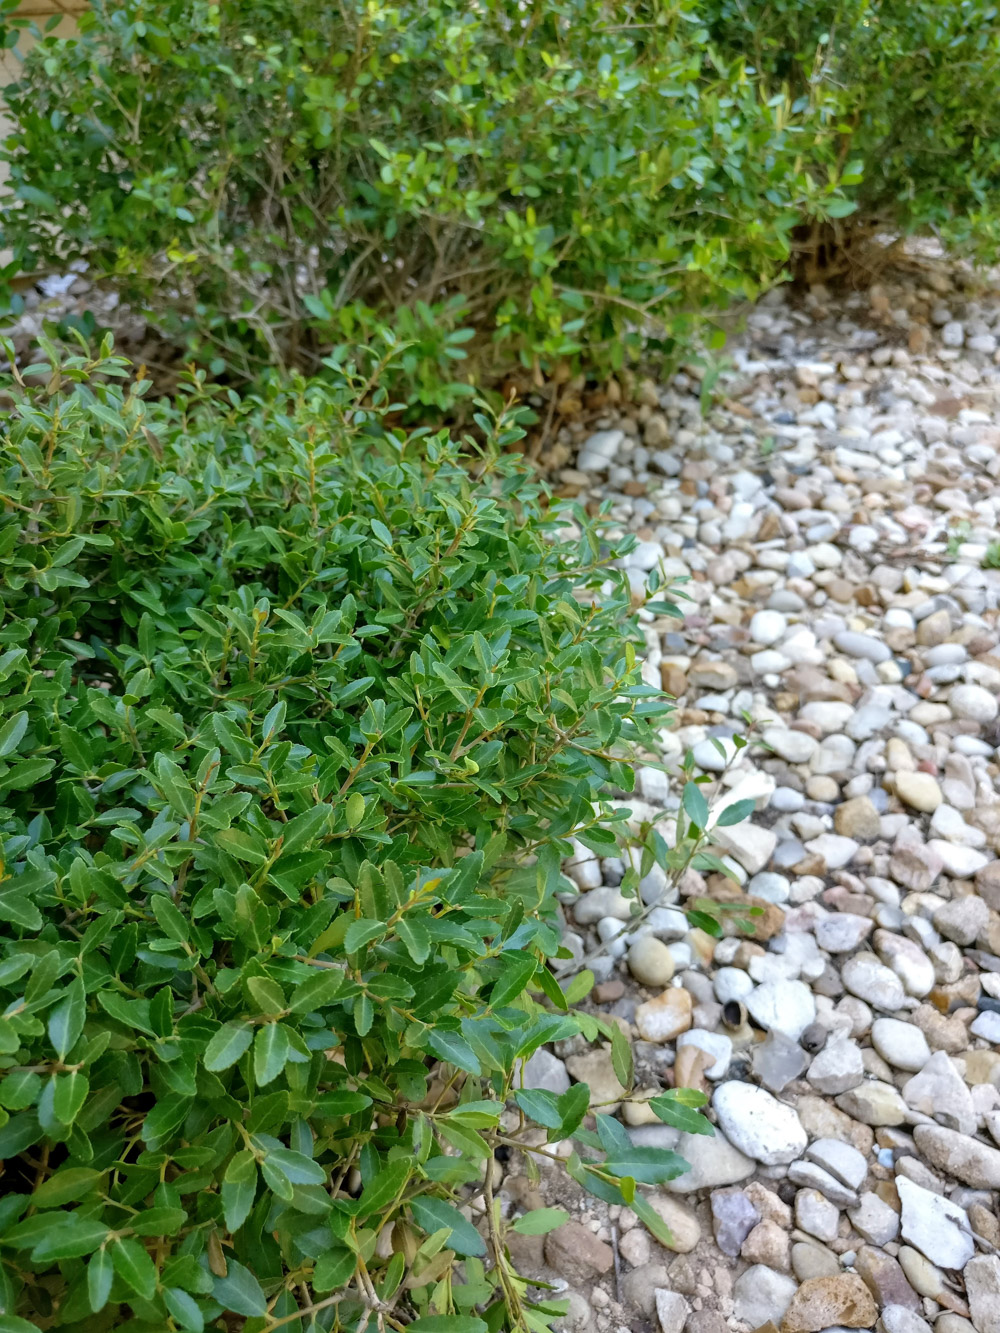 Dwarf yaupon shrubs and river rocks